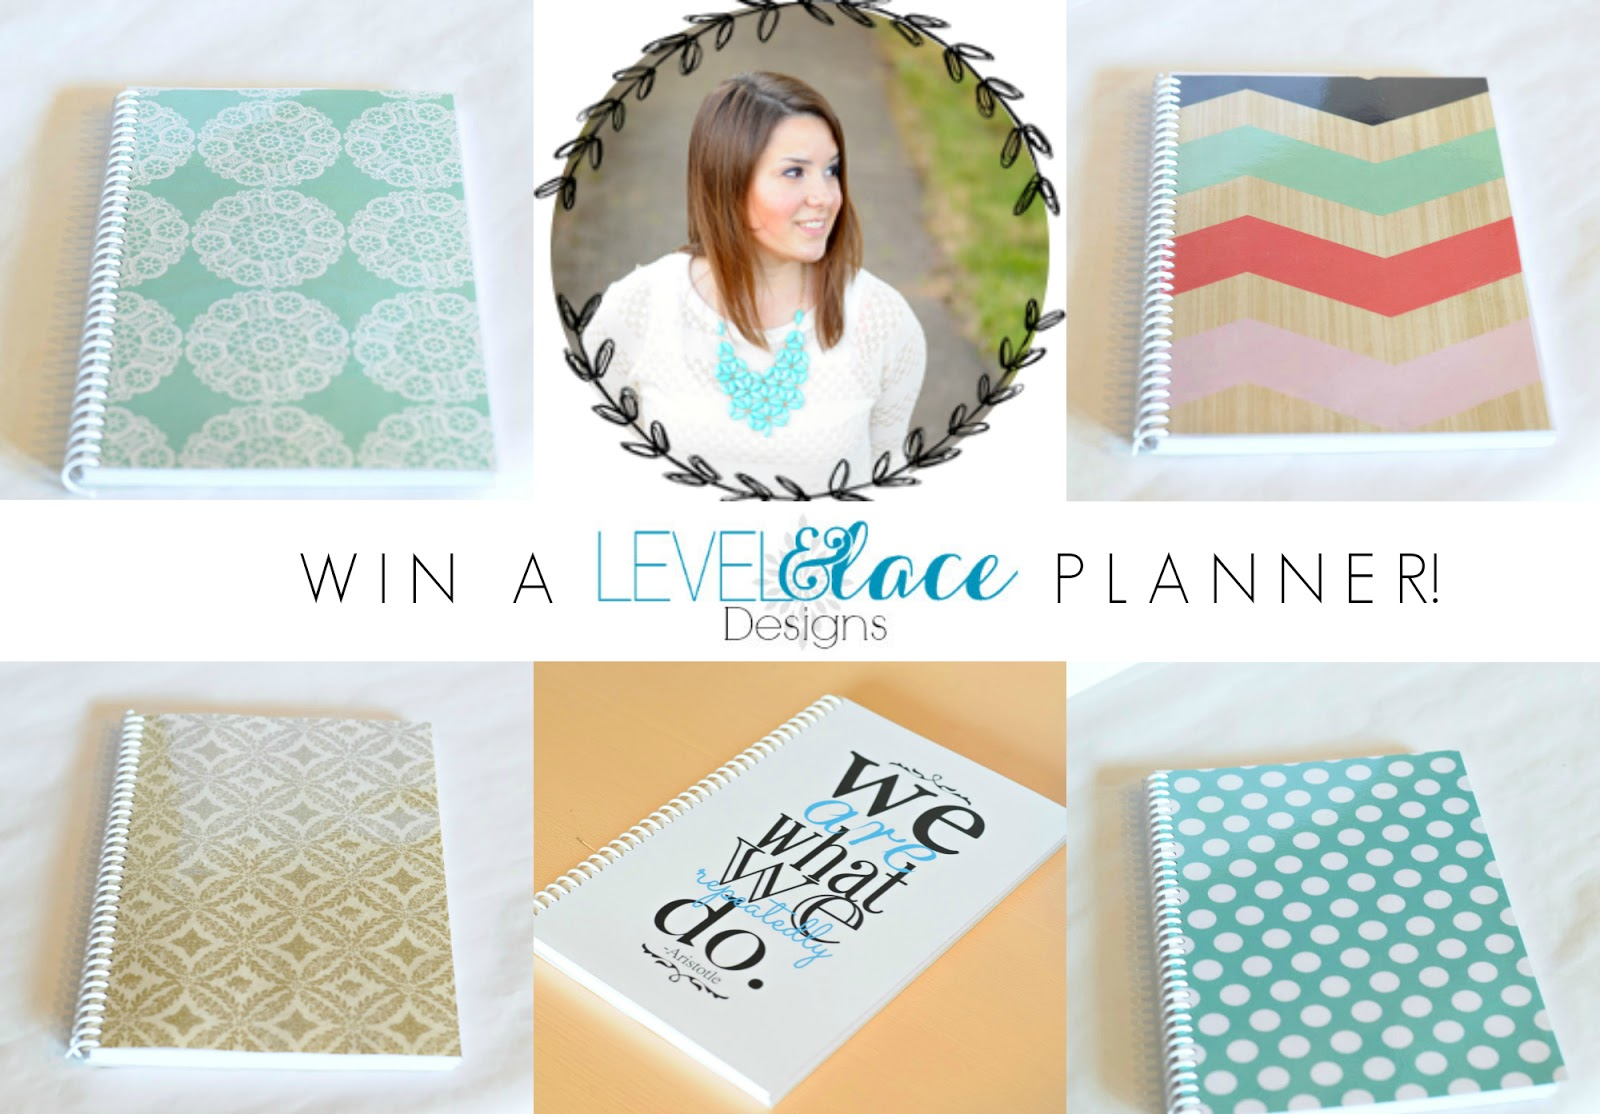 Win a Level and Lace Planner